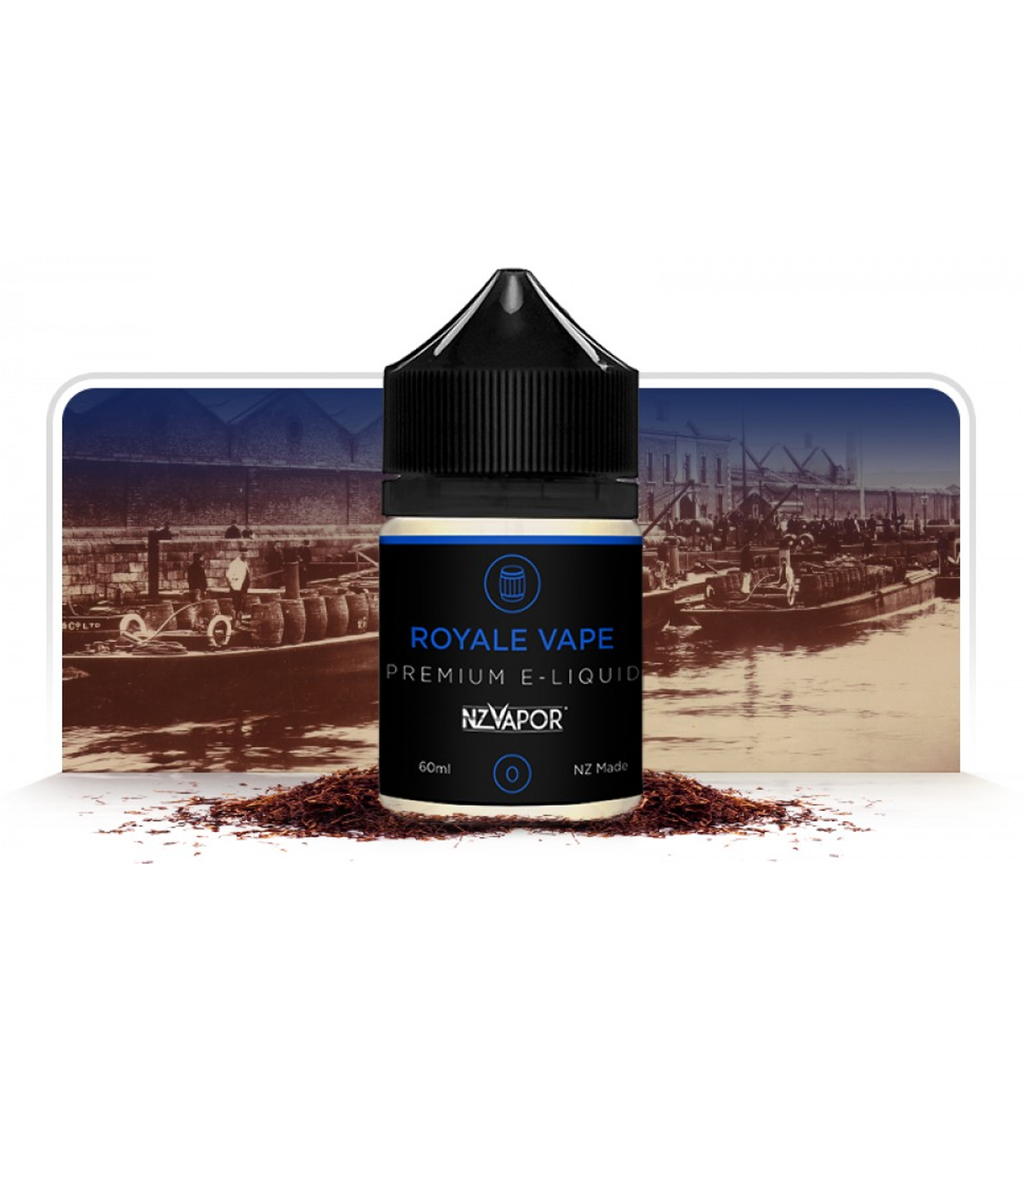 Royale Vape E-Liquid 60ml-Purplevibe